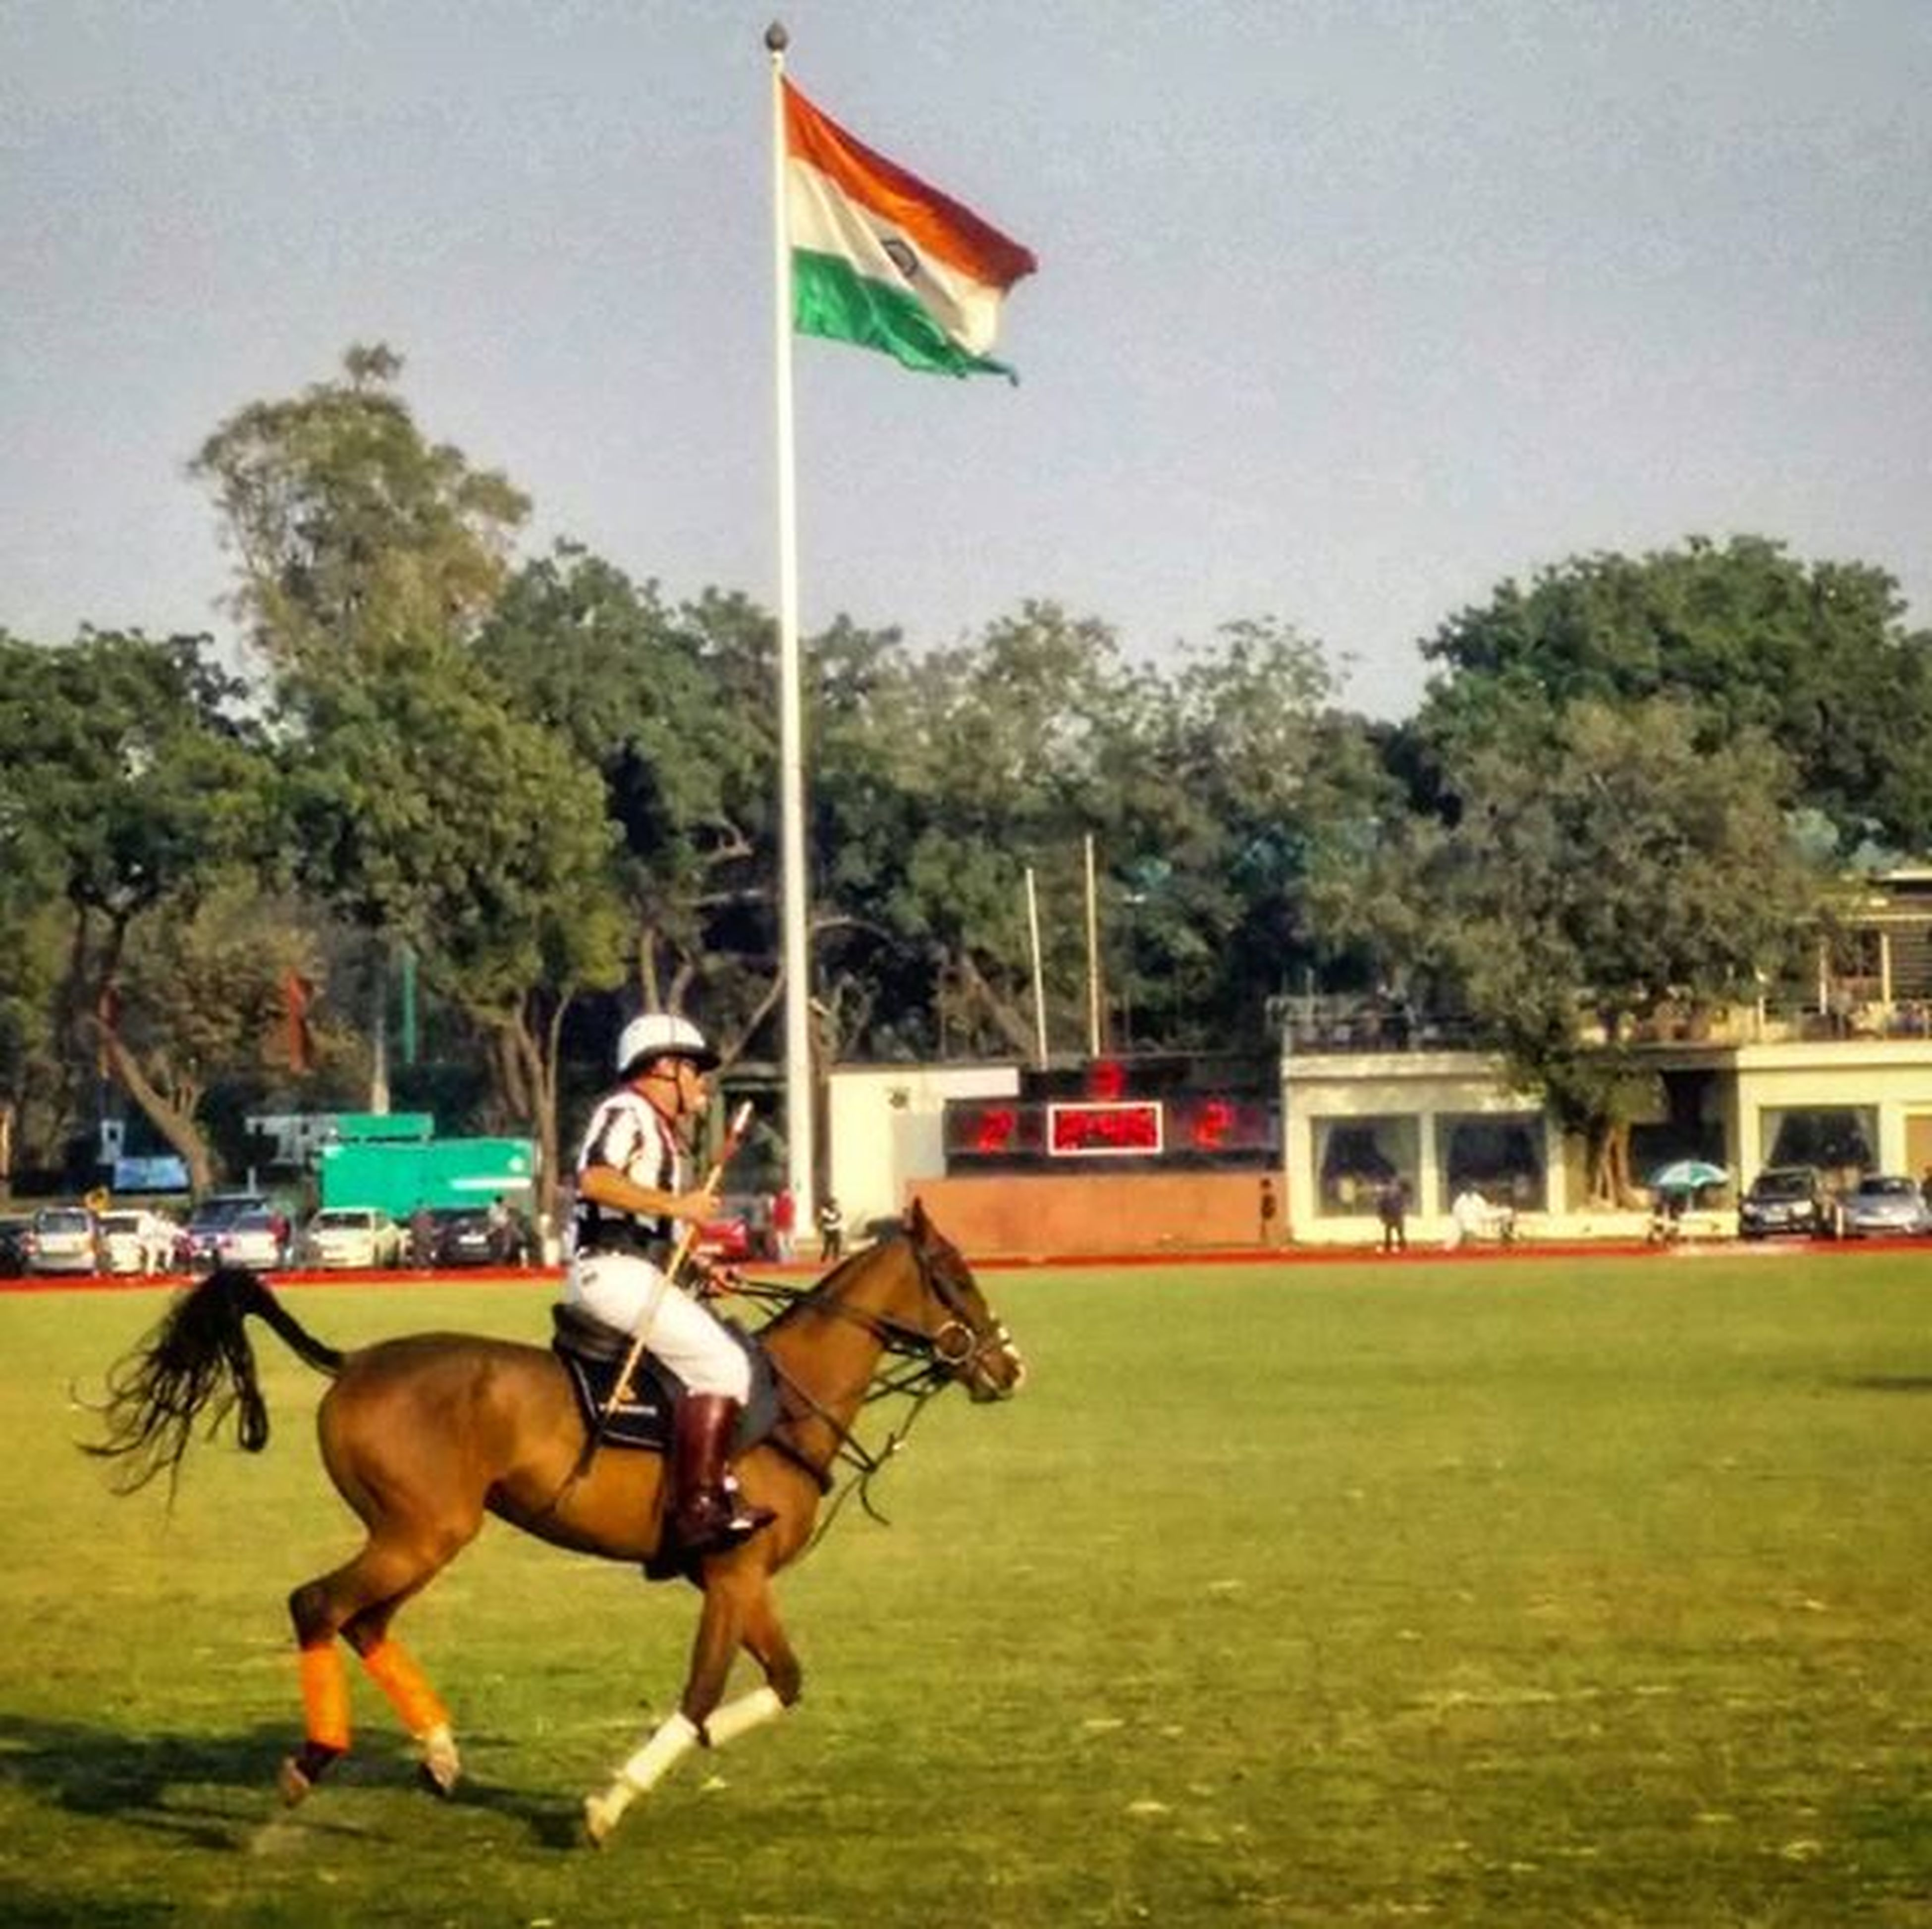 A great afternoon watching then polo match Celebrate Delhi Sunnyday Tiranga Sports Polo Horses Nofilter